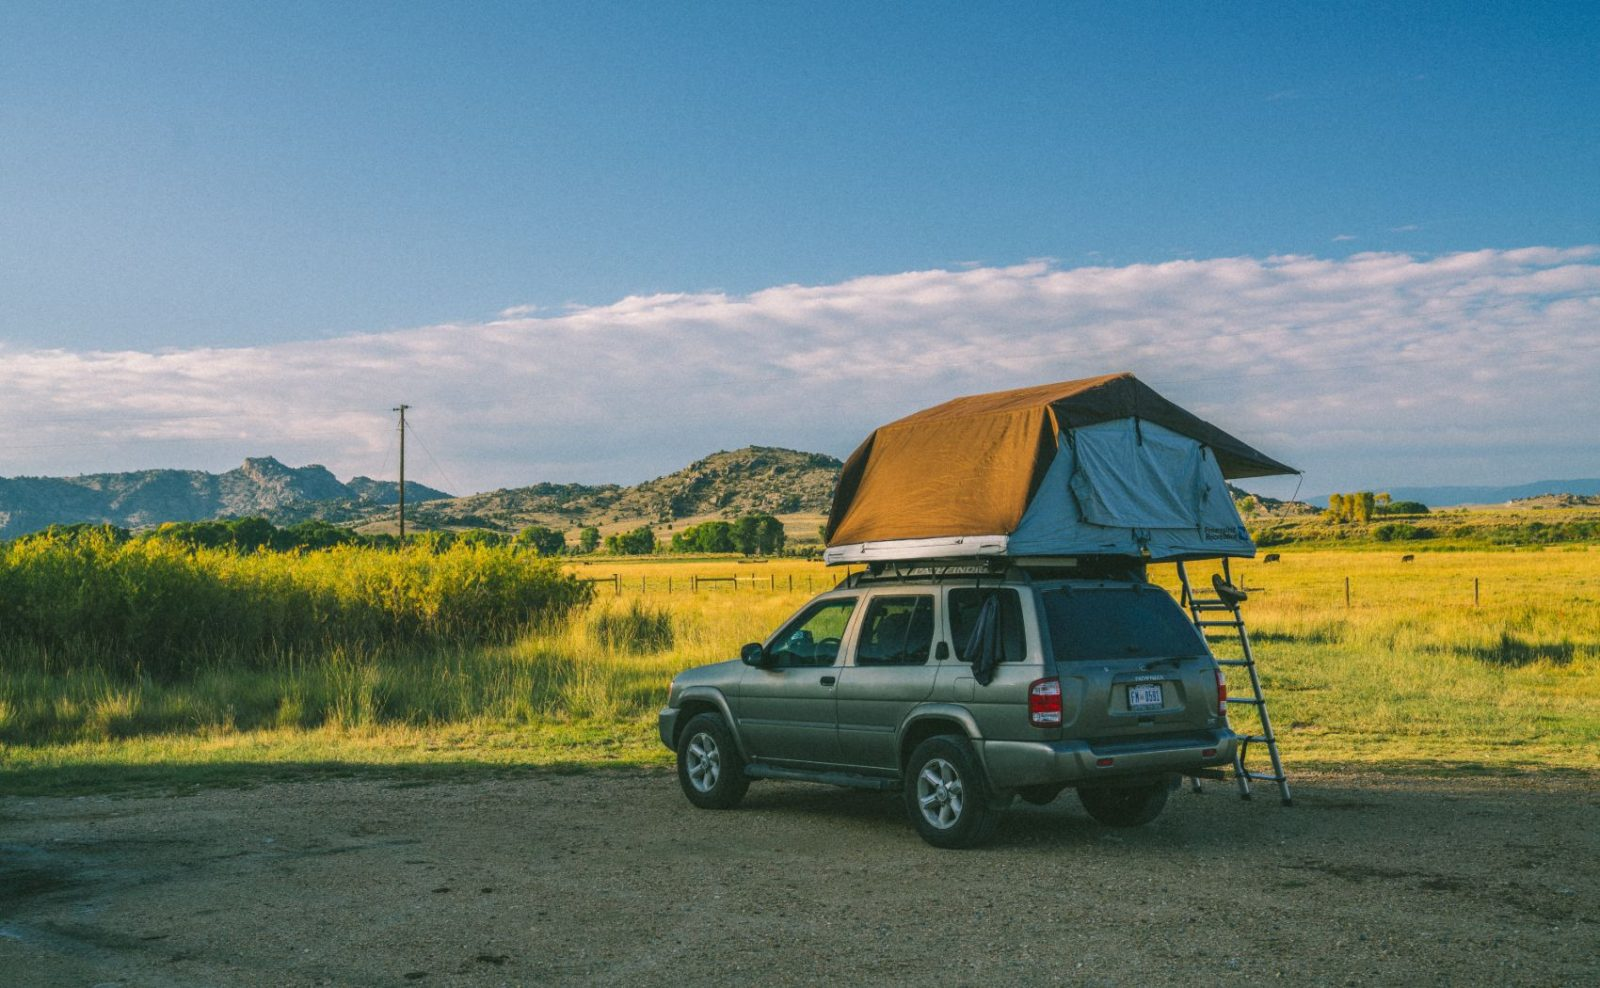 rooftop-tents-101:-here's-what-you-need-to-know-before-buying-one